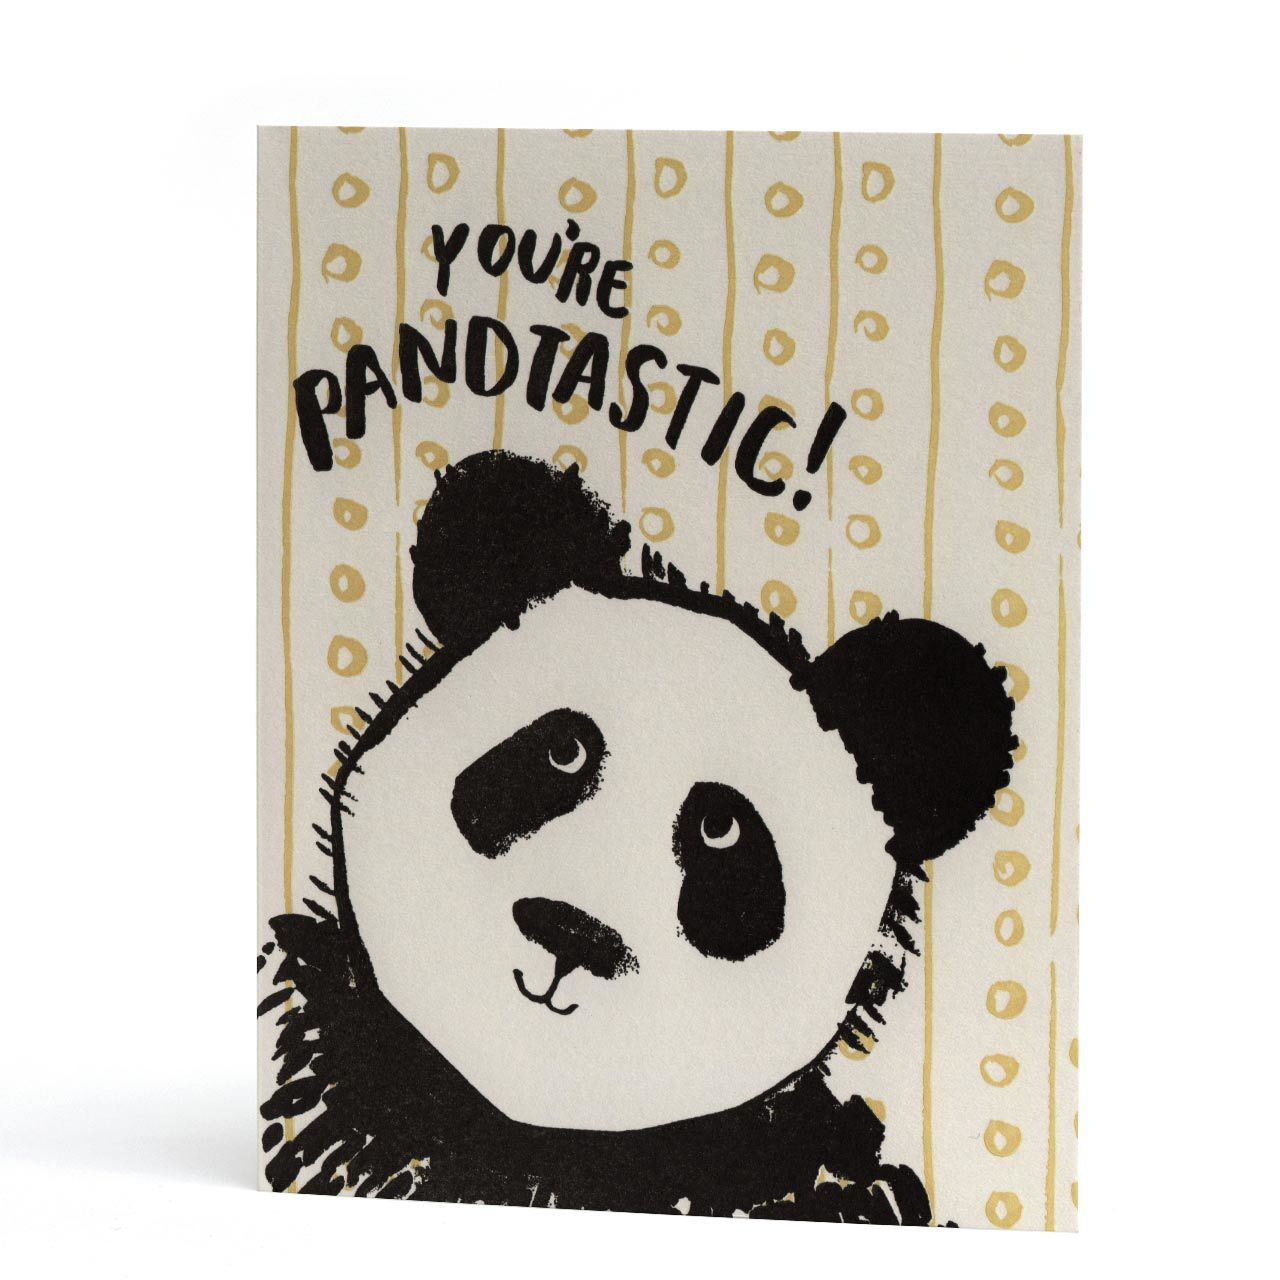 You're Pandtastic Letterpress Greeting Card